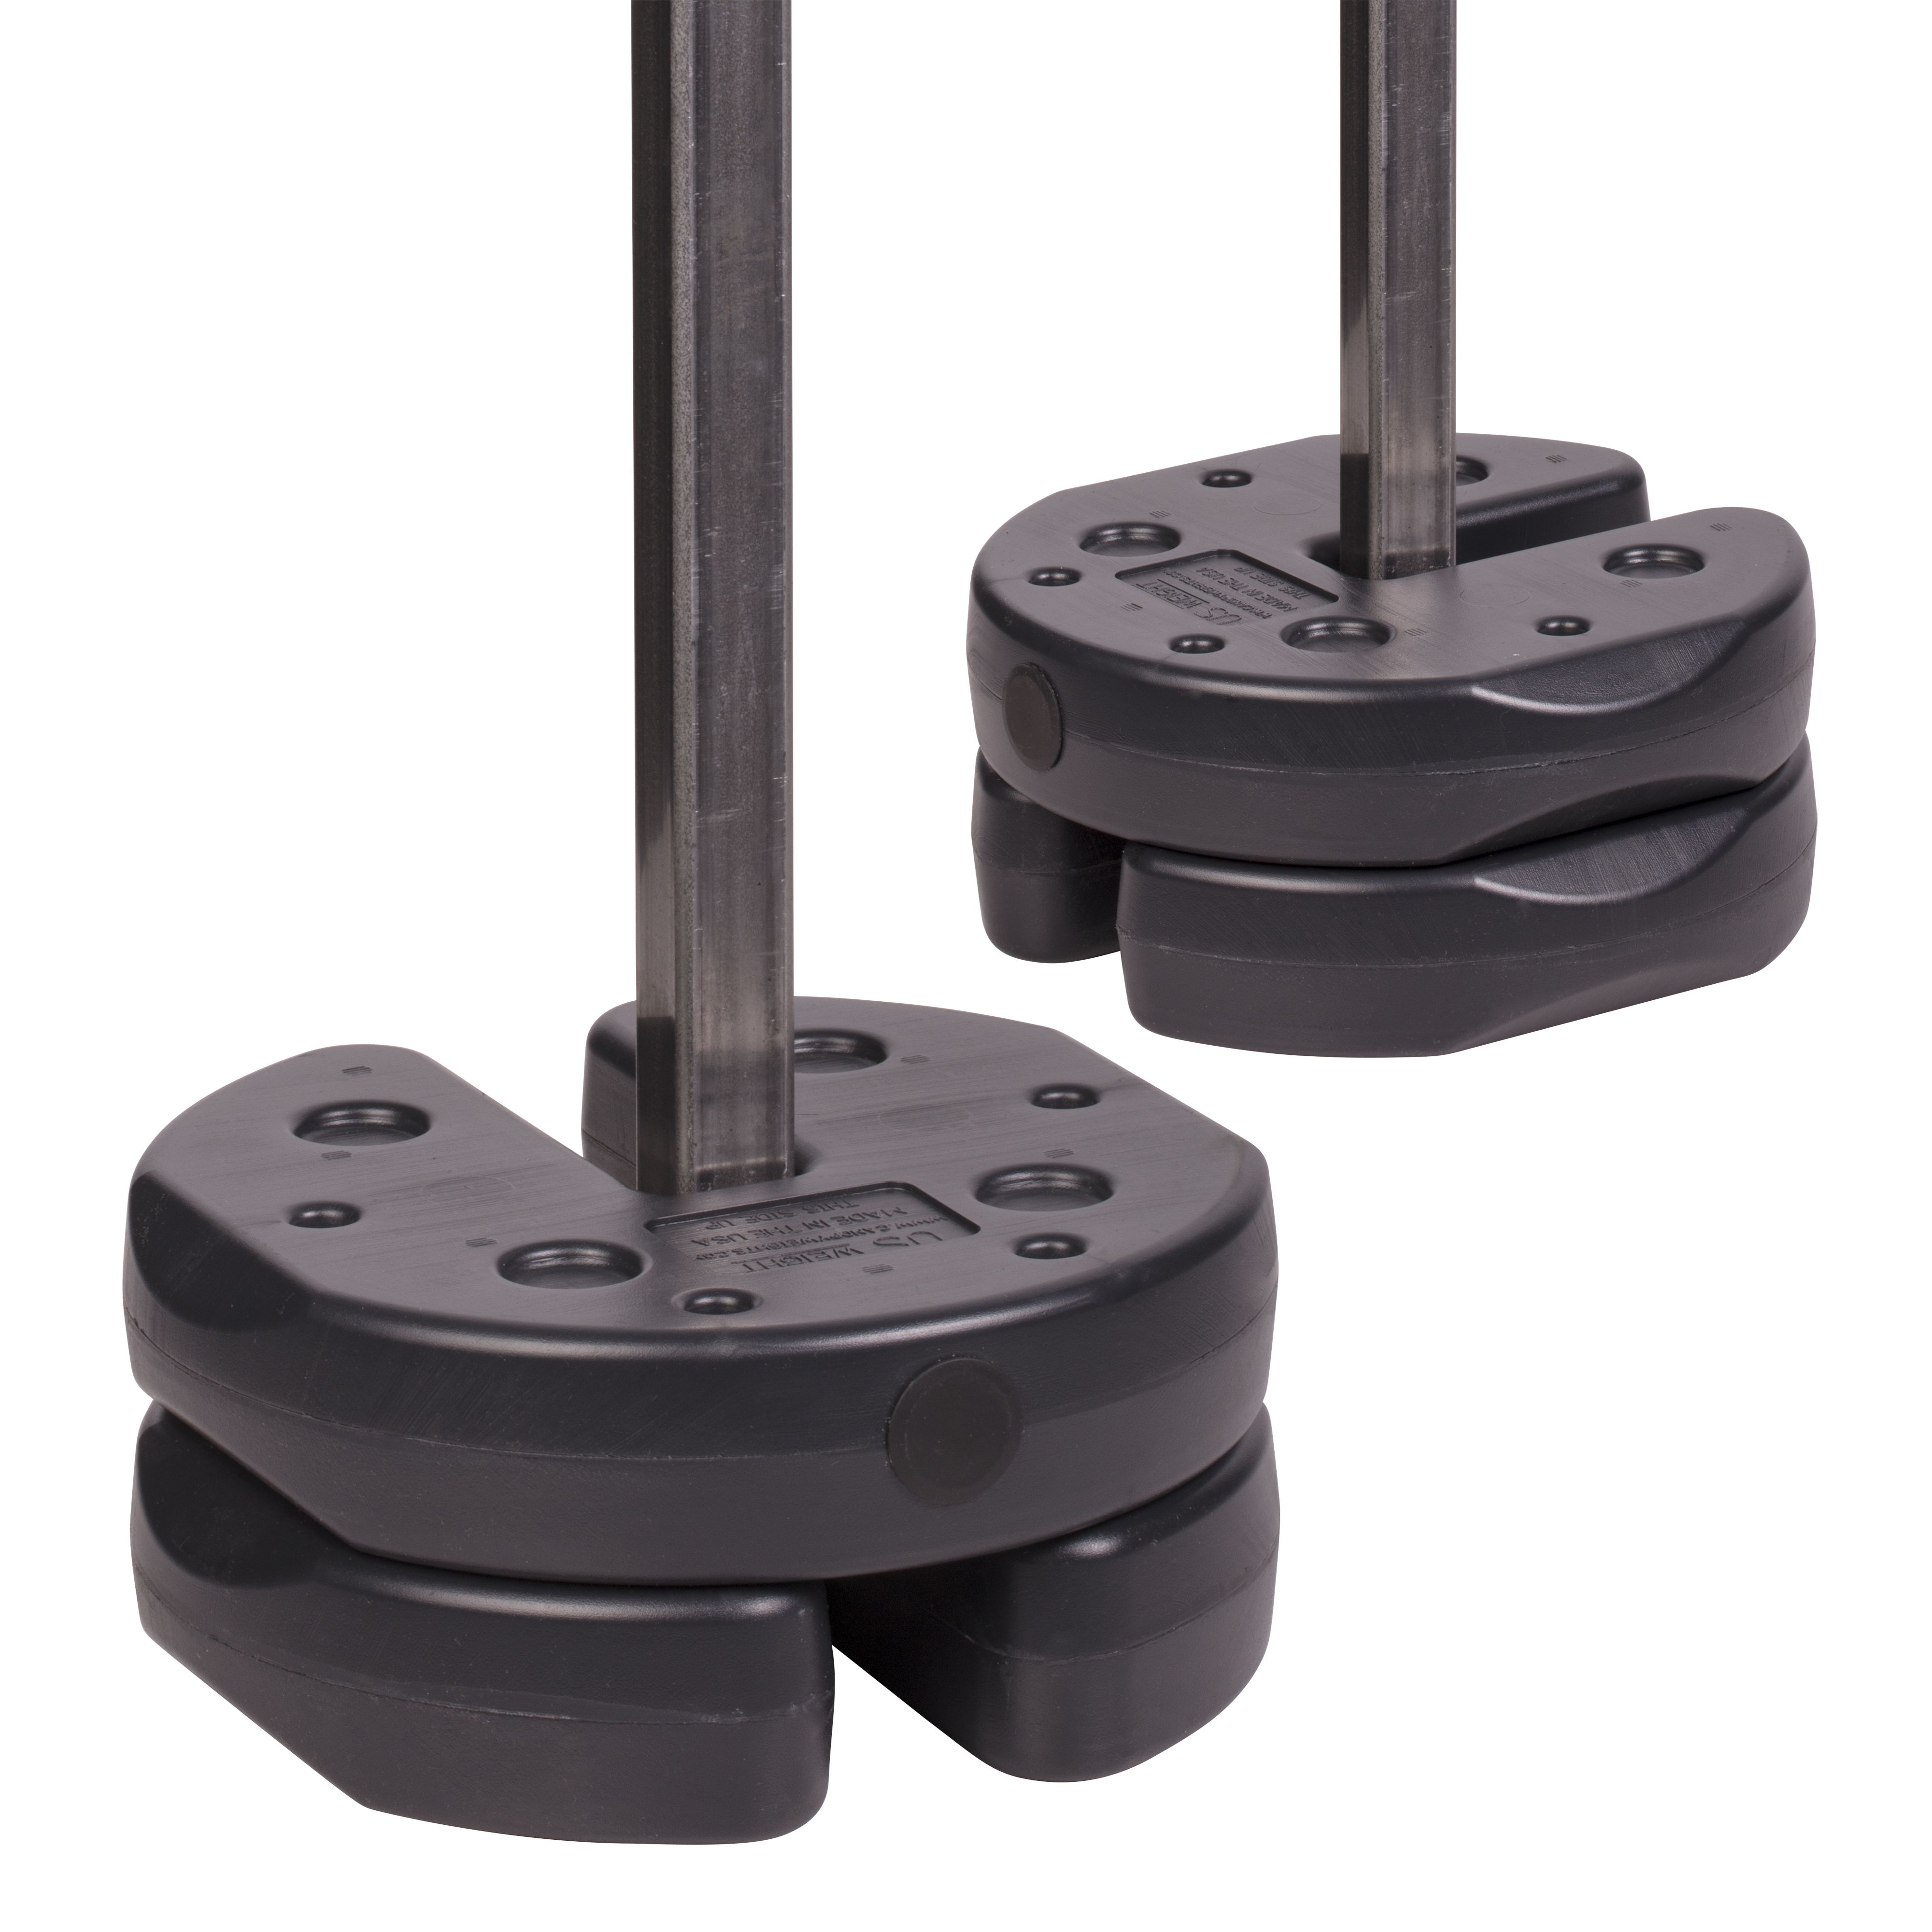 Us Weight Canopy Weights For Securing Canopies Tents And Umbrellas At Outside Events Ad Weights Aff Securing W In 2020 Canopy Weights Weights For Sale Canopy